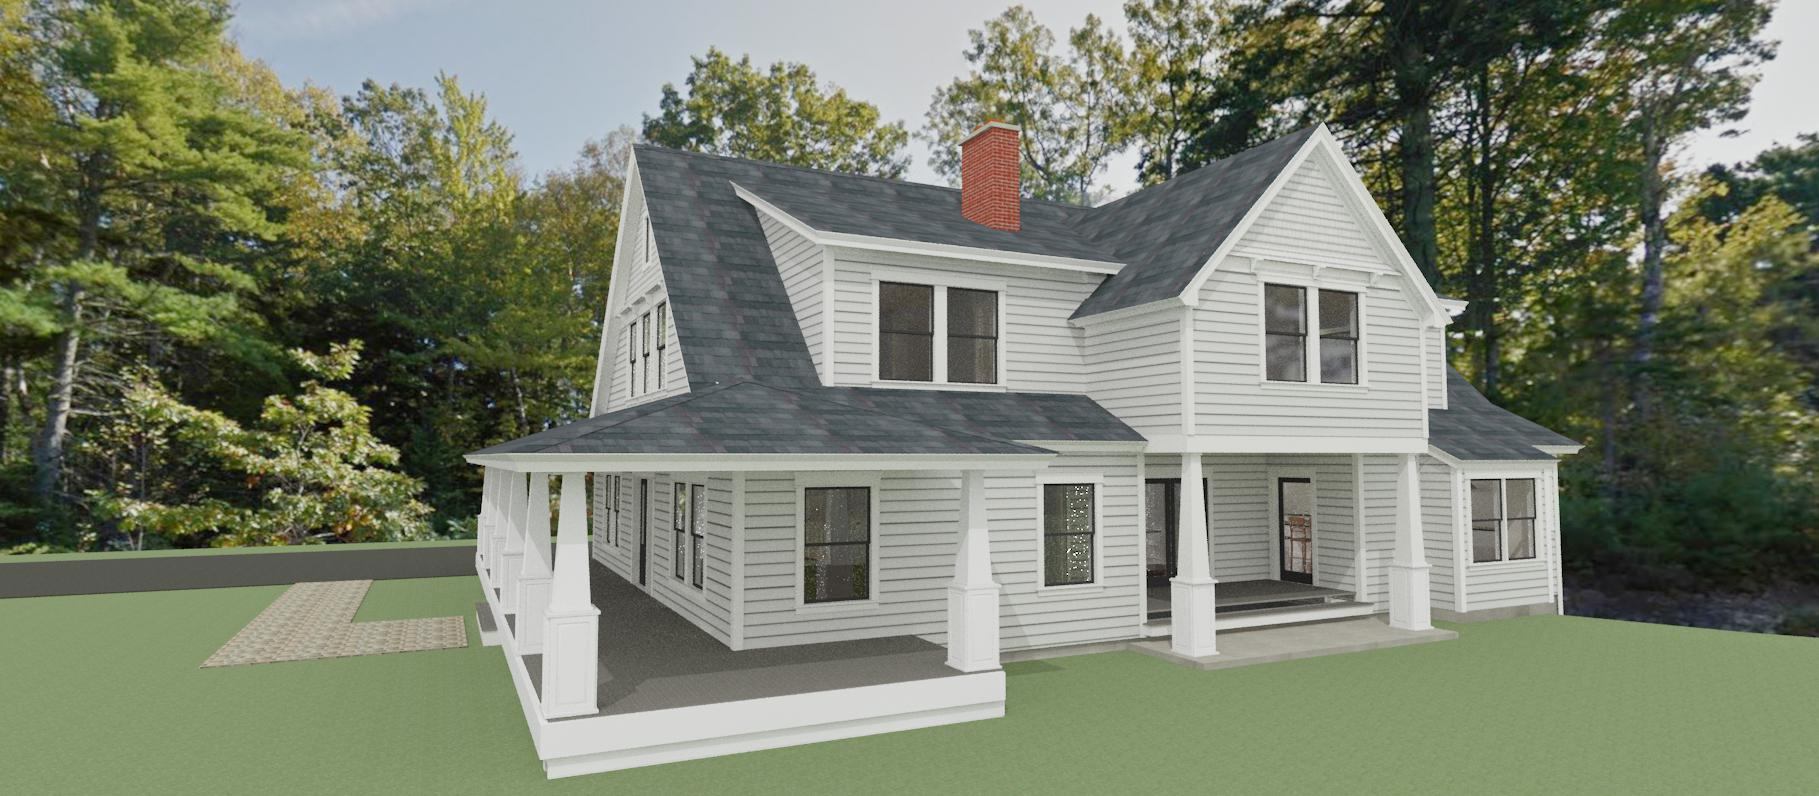 Single Family Home for Sale at 23 Tigerlily Lane Cape Elizabeth, Maine 04107 United States